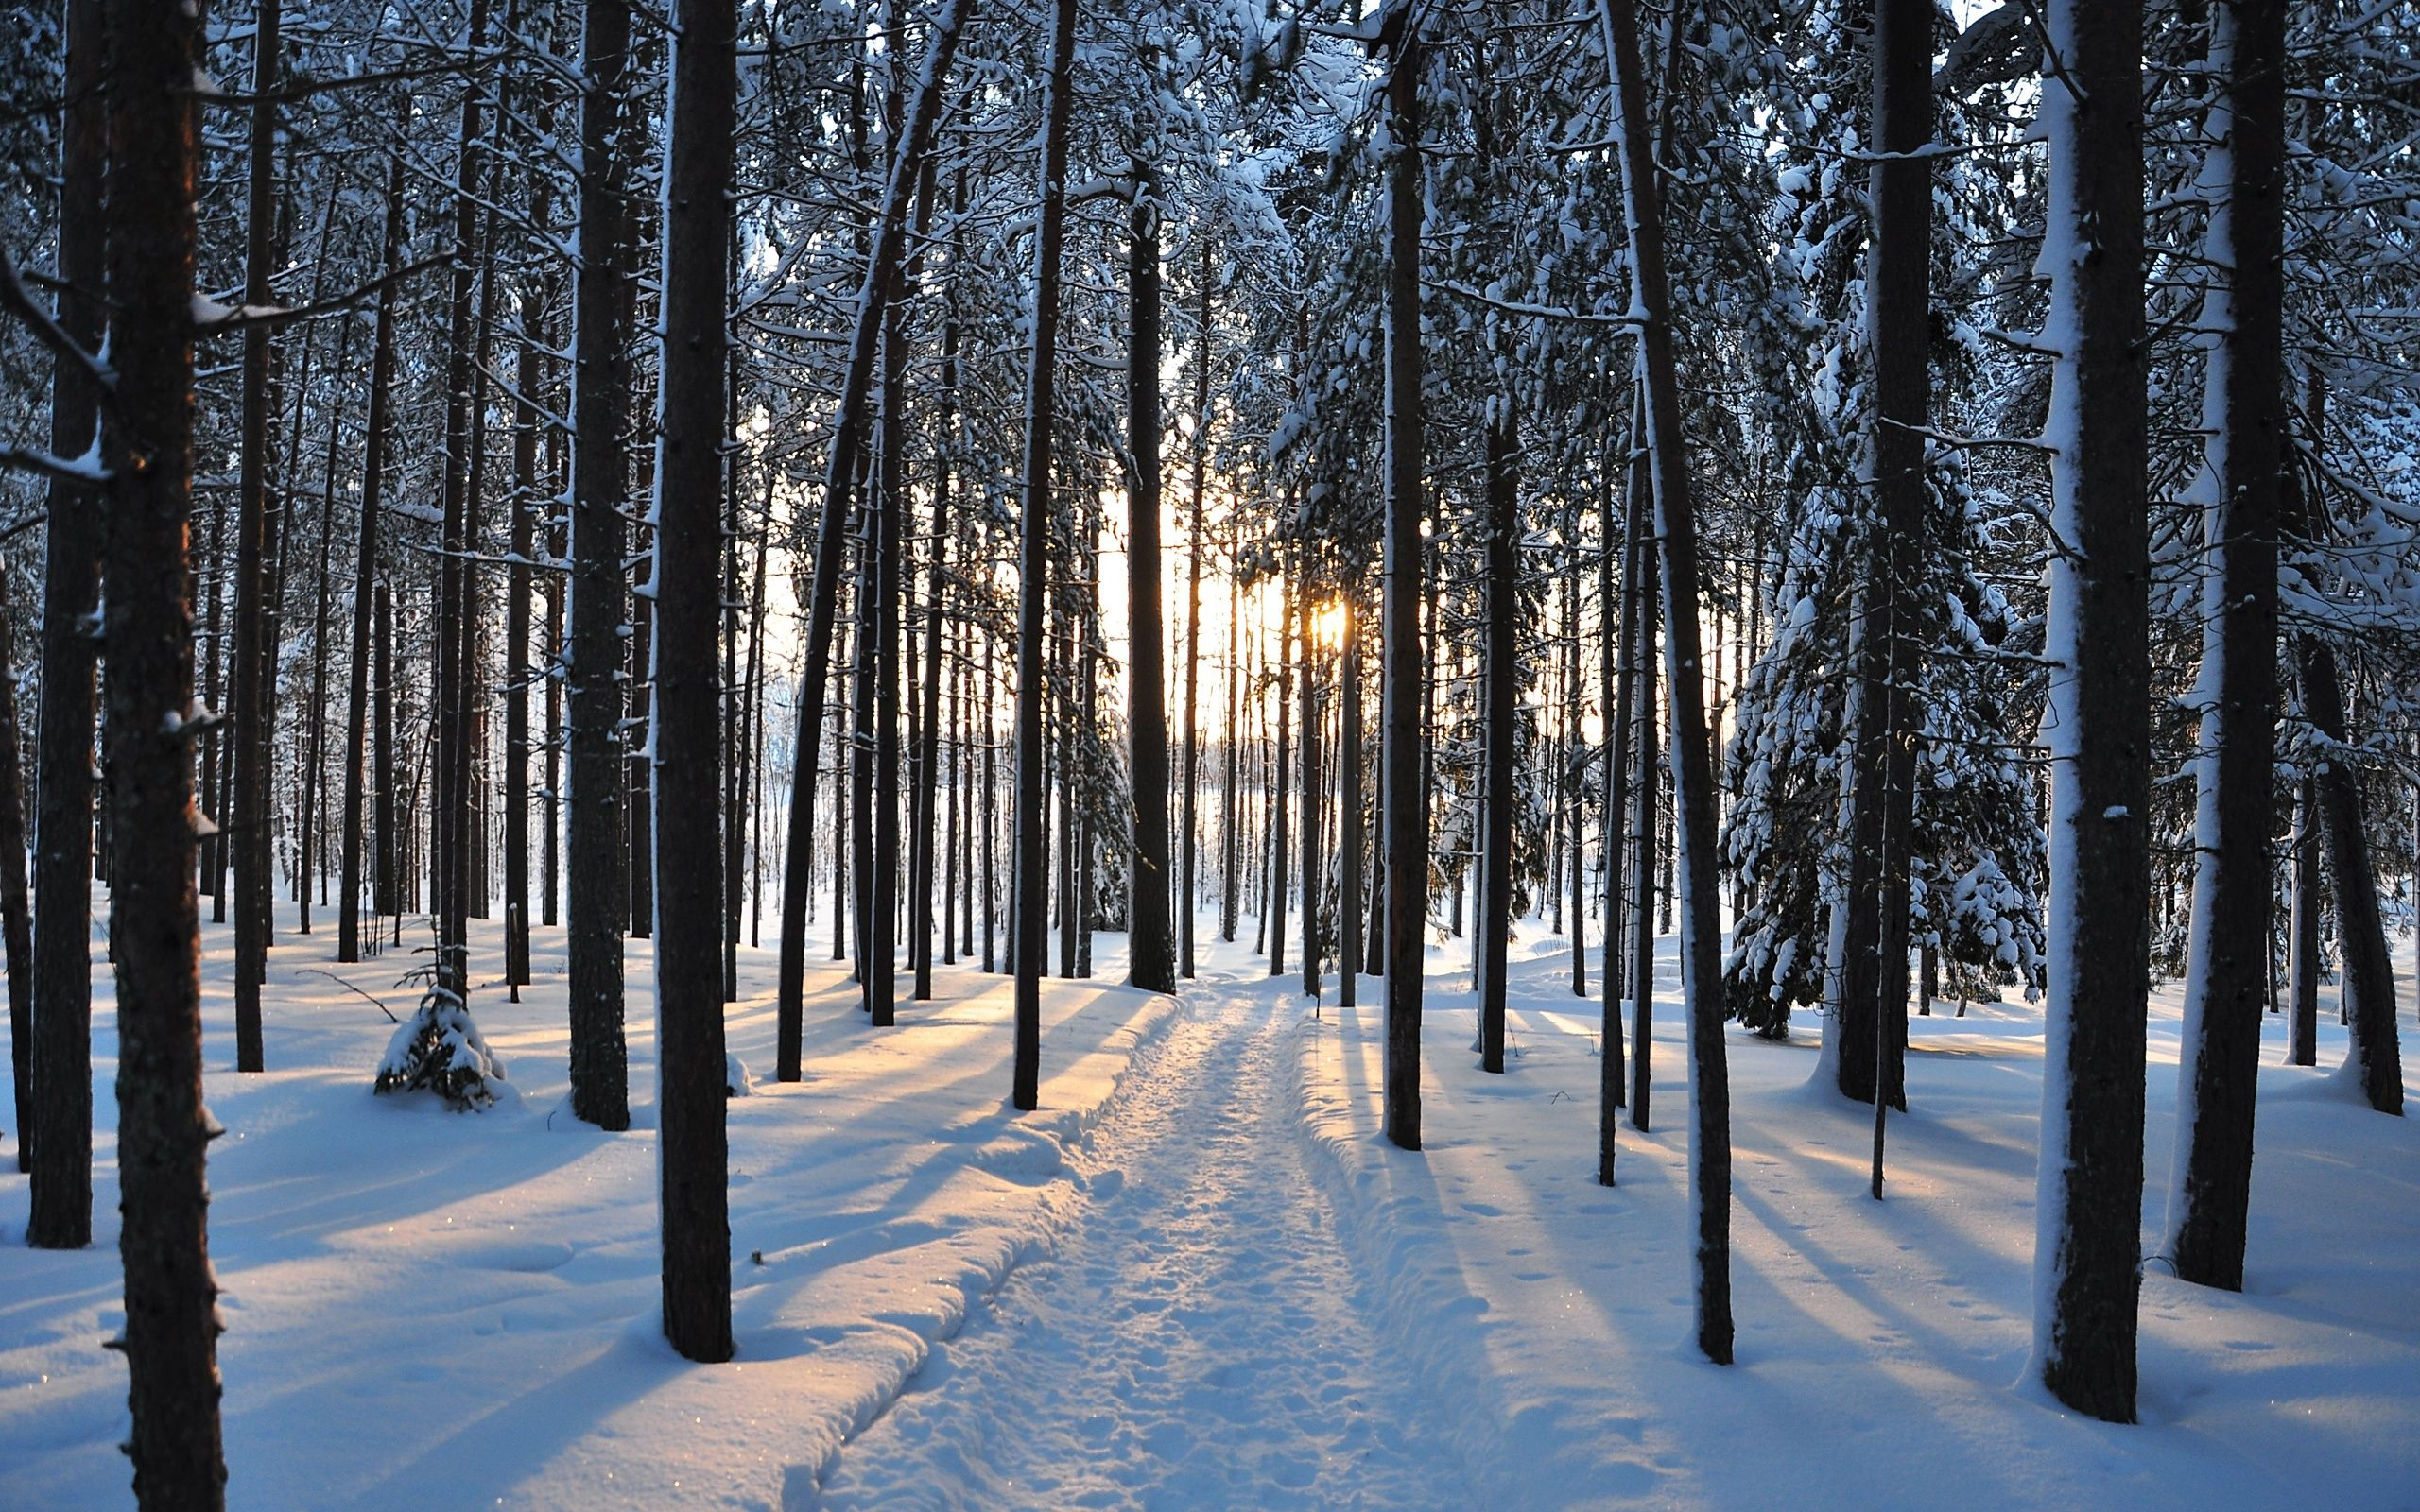 Winter Trees Forest Road Nature Landscape H Wallpaper Background Winter Trees Winter Forest Tree Forest